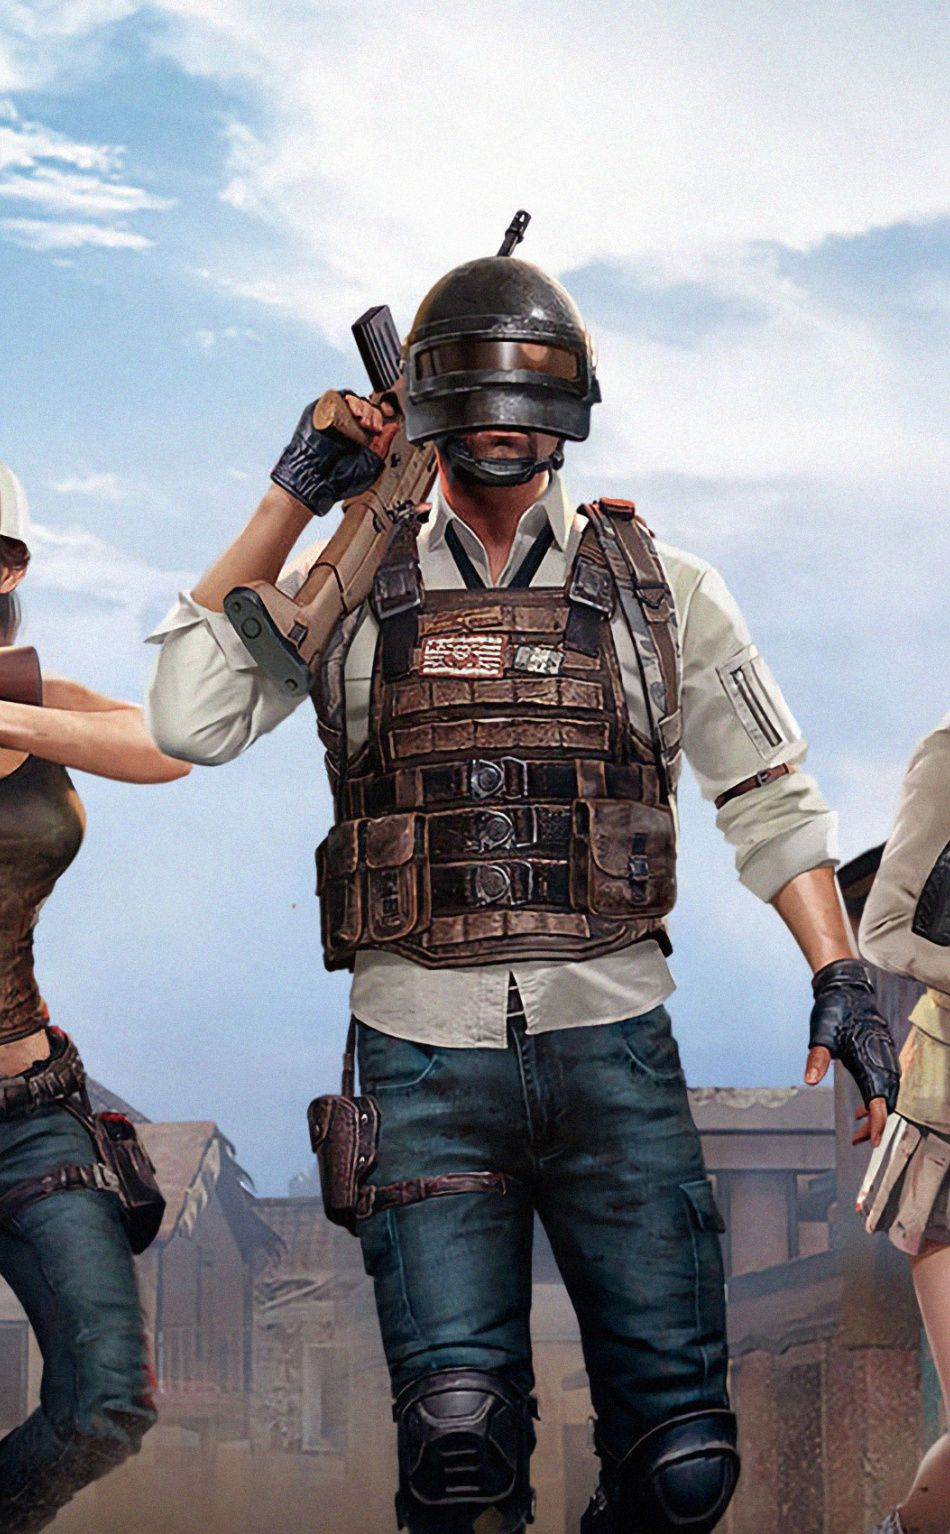 Pc Game Squad Of Pubg Wallpaper Laptop Wallpaper Mobile Smartphone Game Wallpaper Iphone